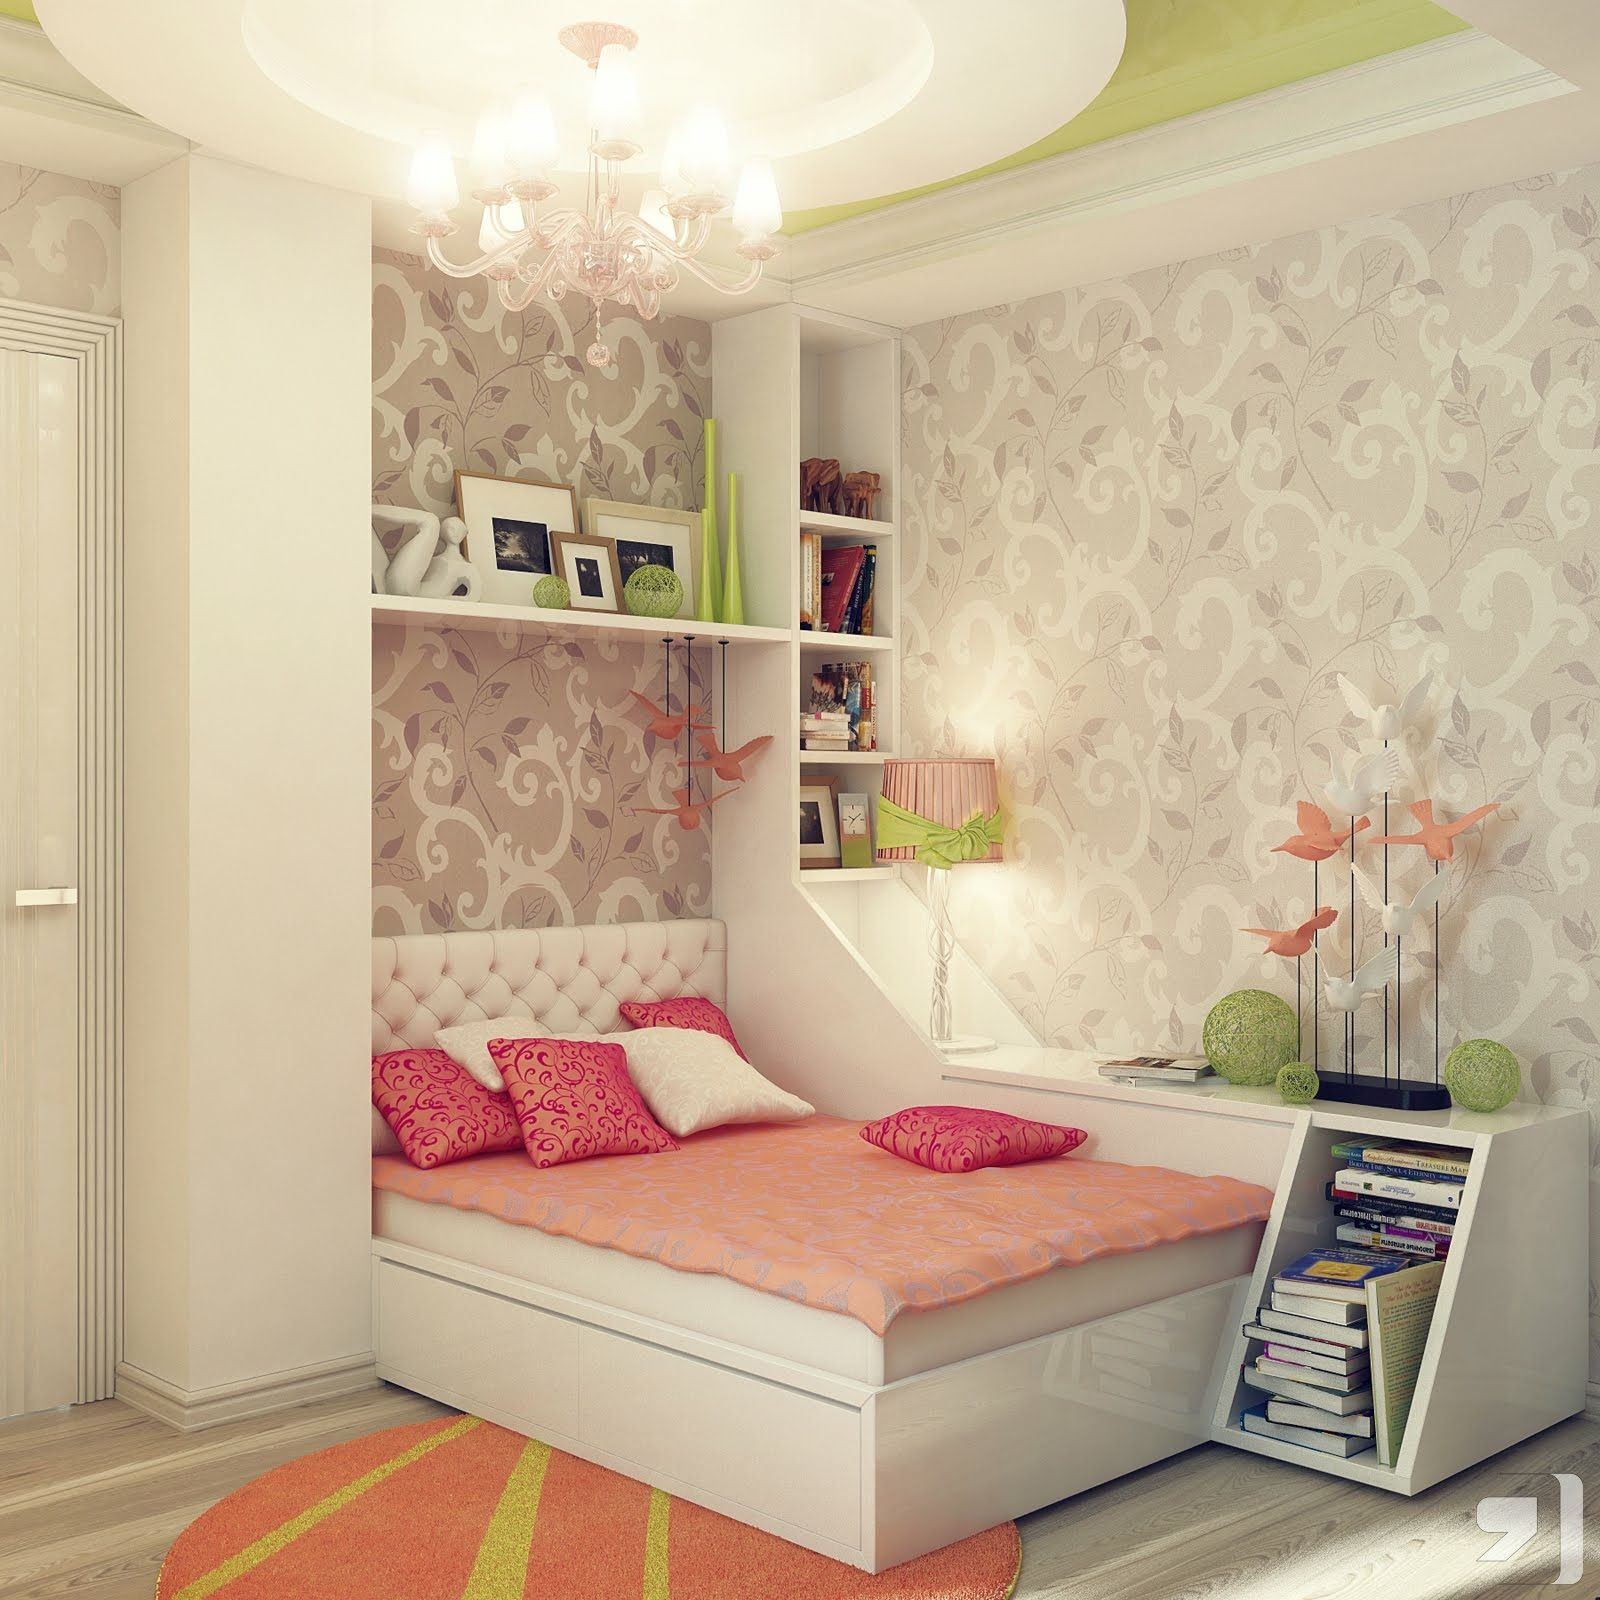 Bedrooms for girls green - Decorating A Bedroom Theme For Girl With Princess Home Design Advisor